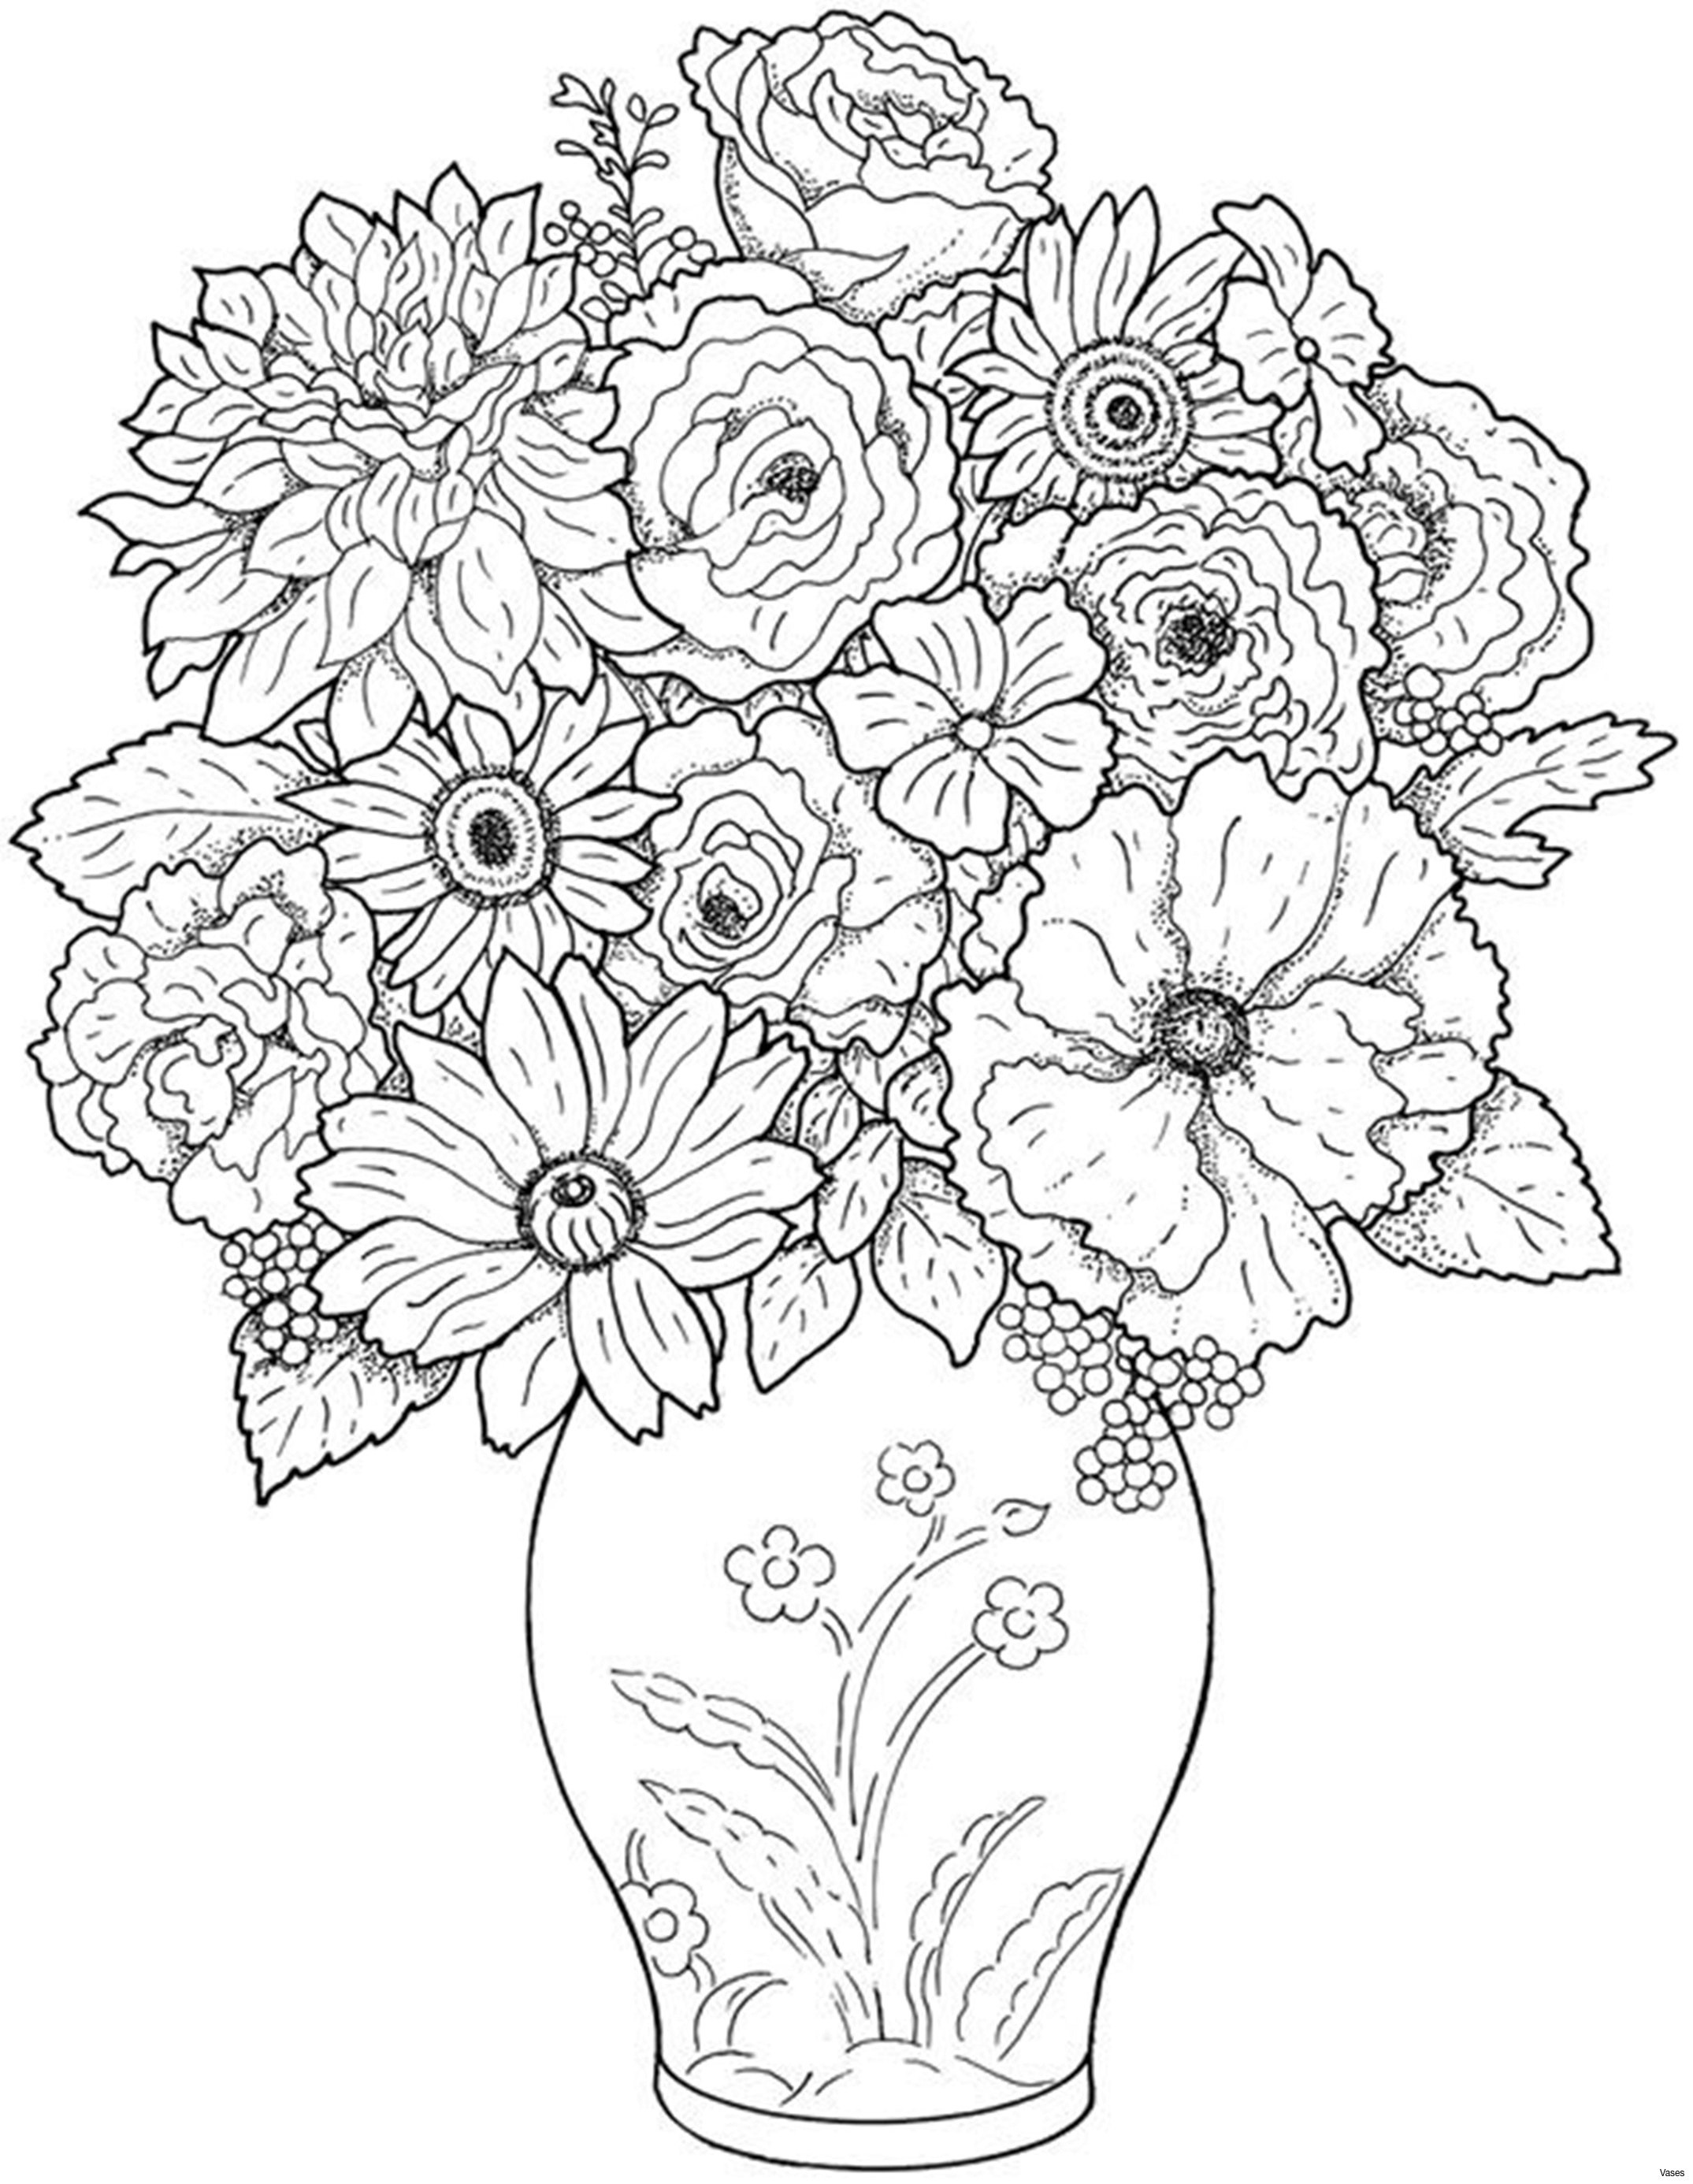 white vase with holes of 3 flower photos beautiful cool vases flower vase coloring page pages inside download image